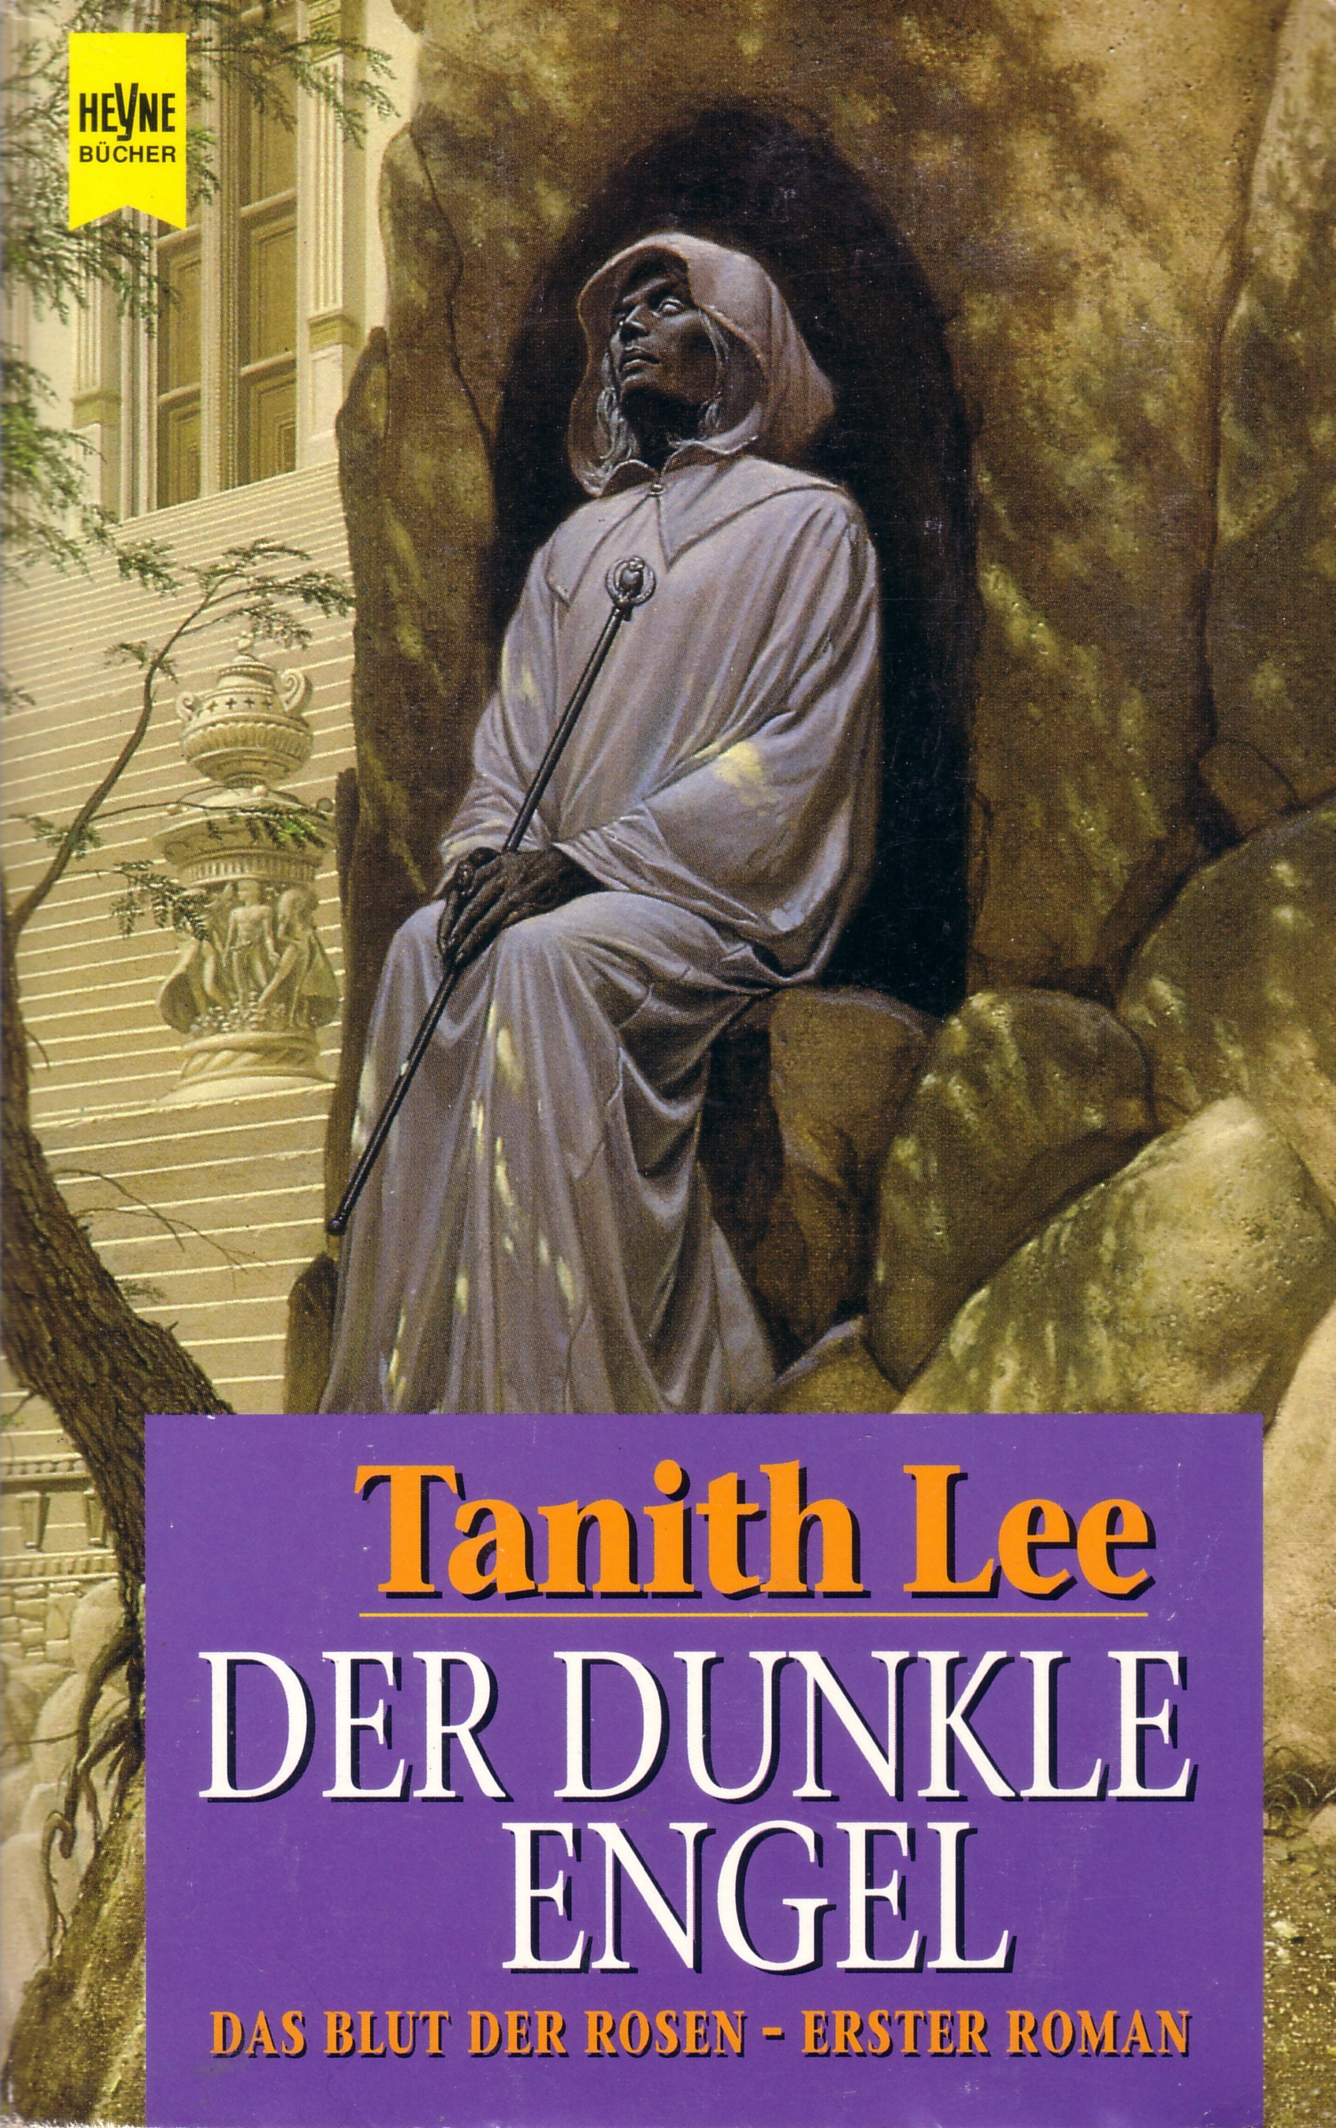 Der Dunkle Engel <br>(The Blood Of Roses - Part I)